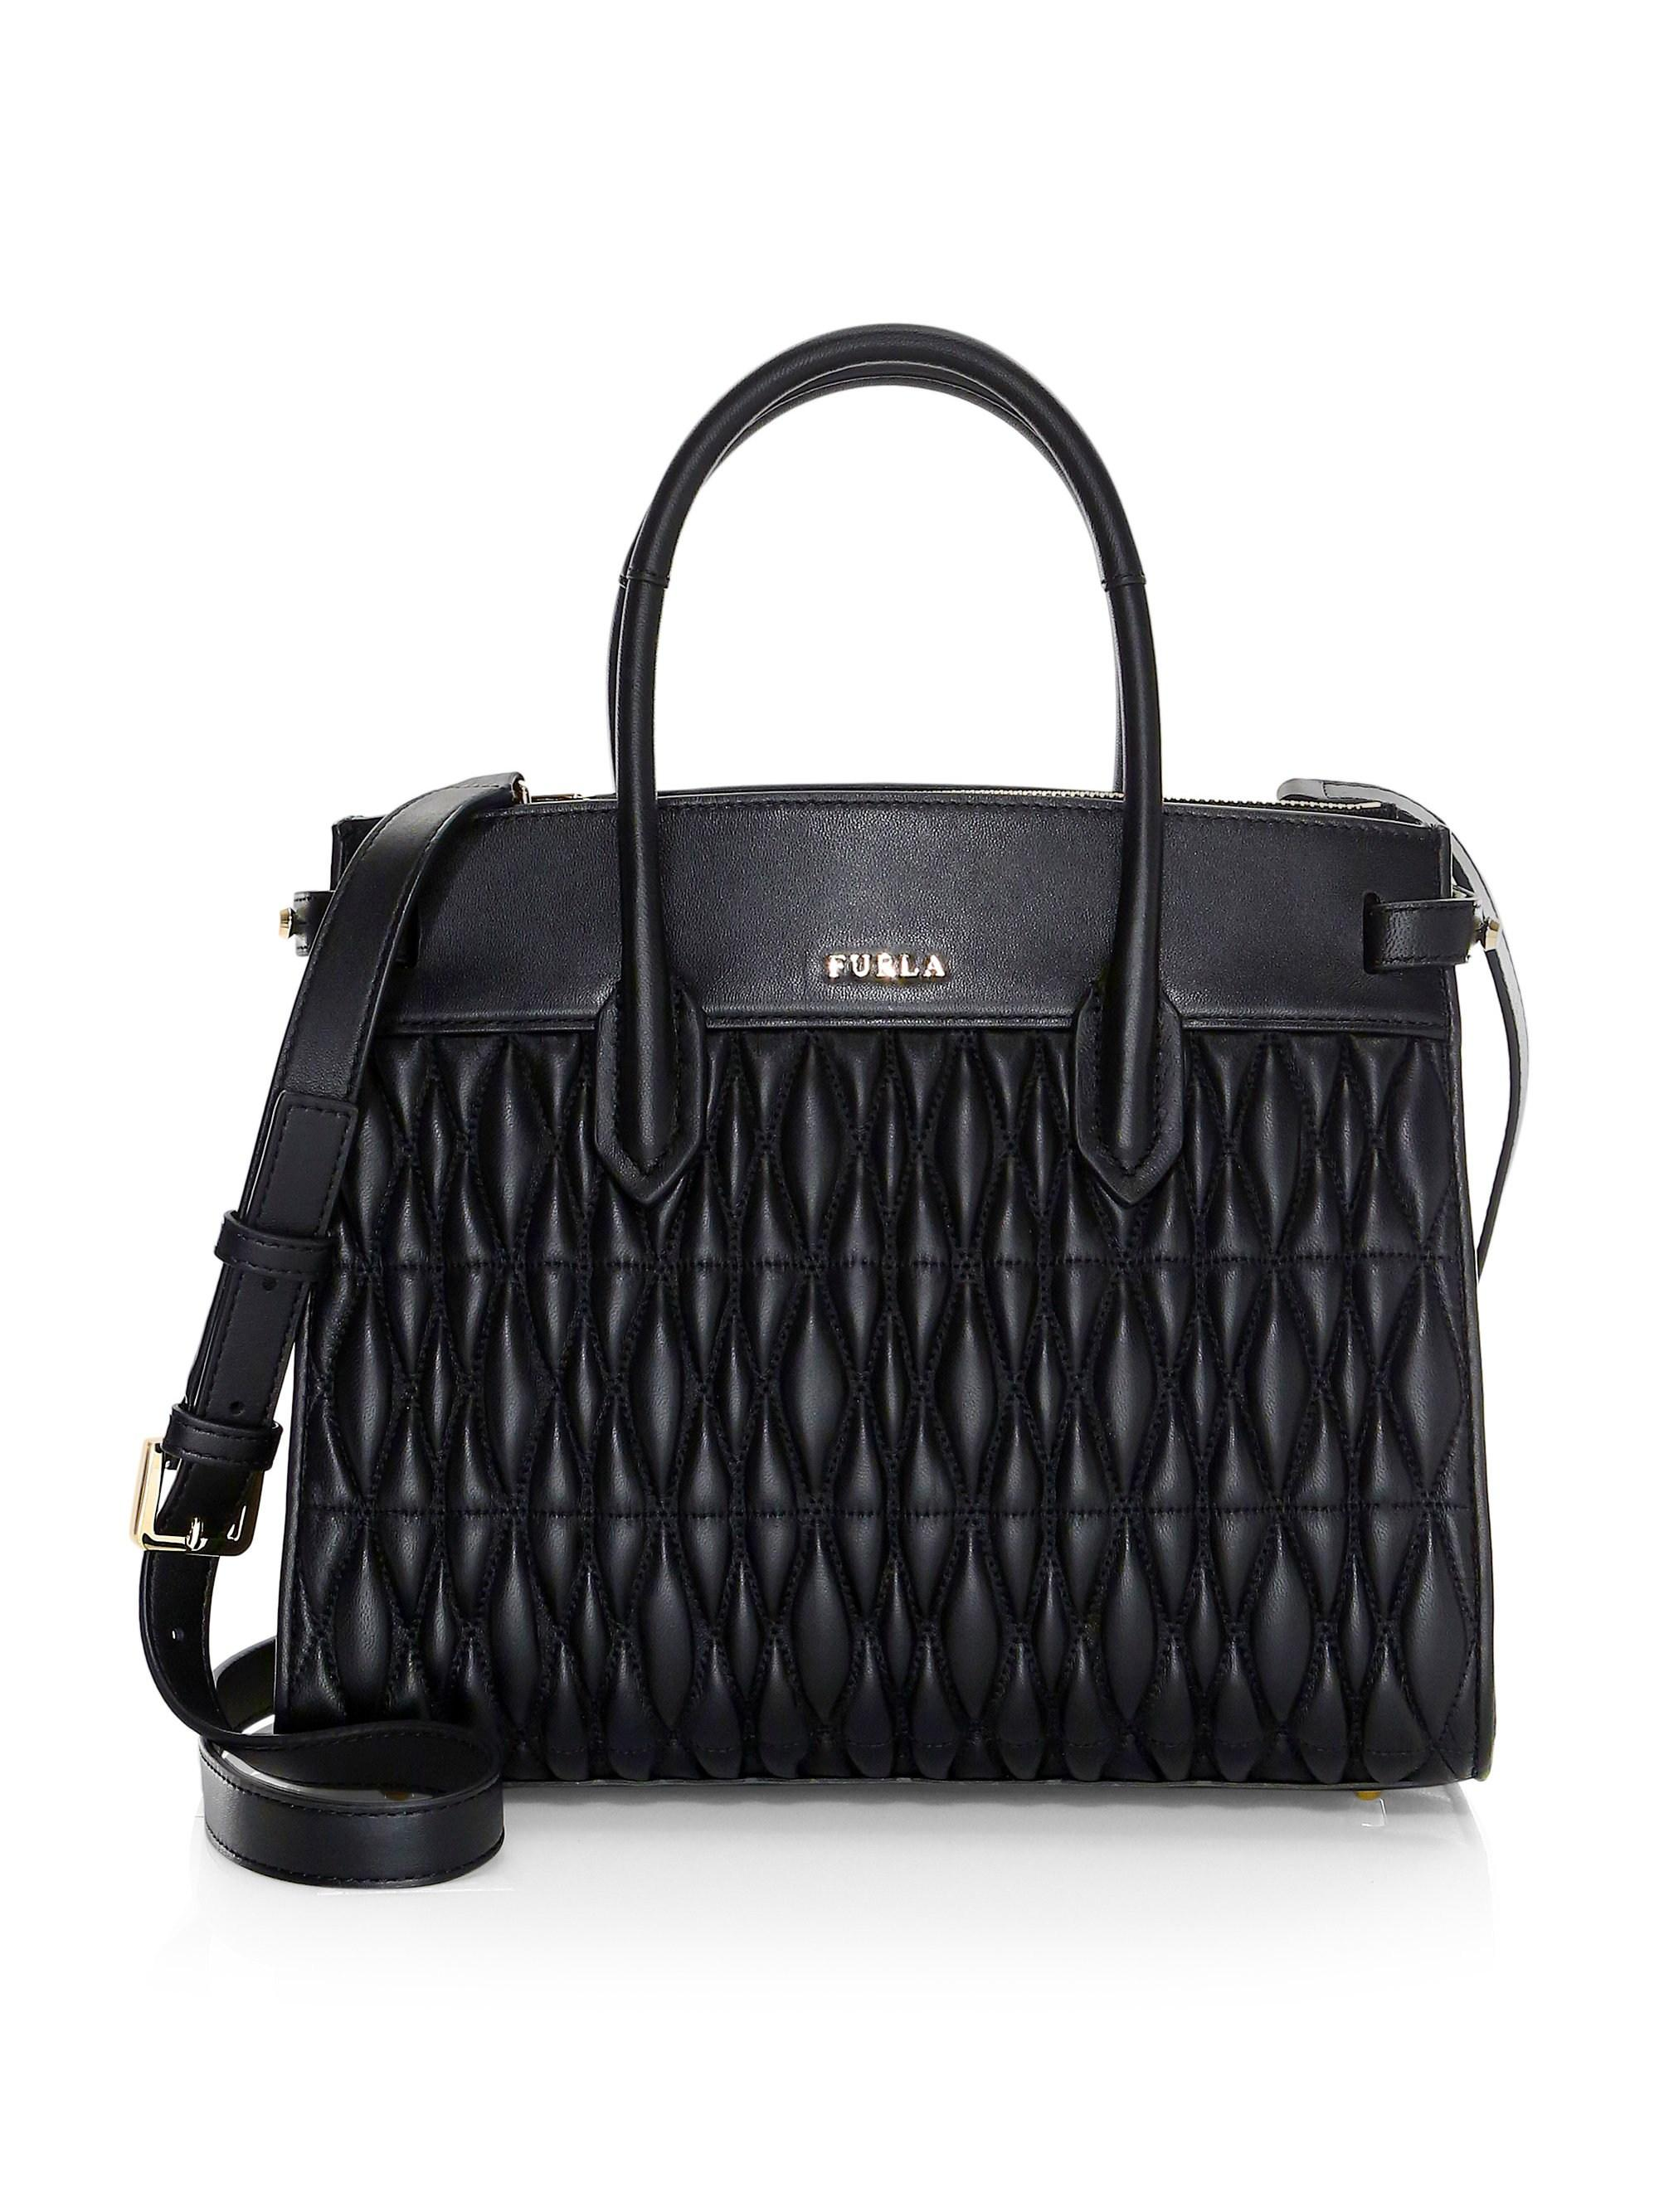 09c5b1a781a1 Furla - Black Pin Small Quilted Leather Tote - Lyst. View fullscreen